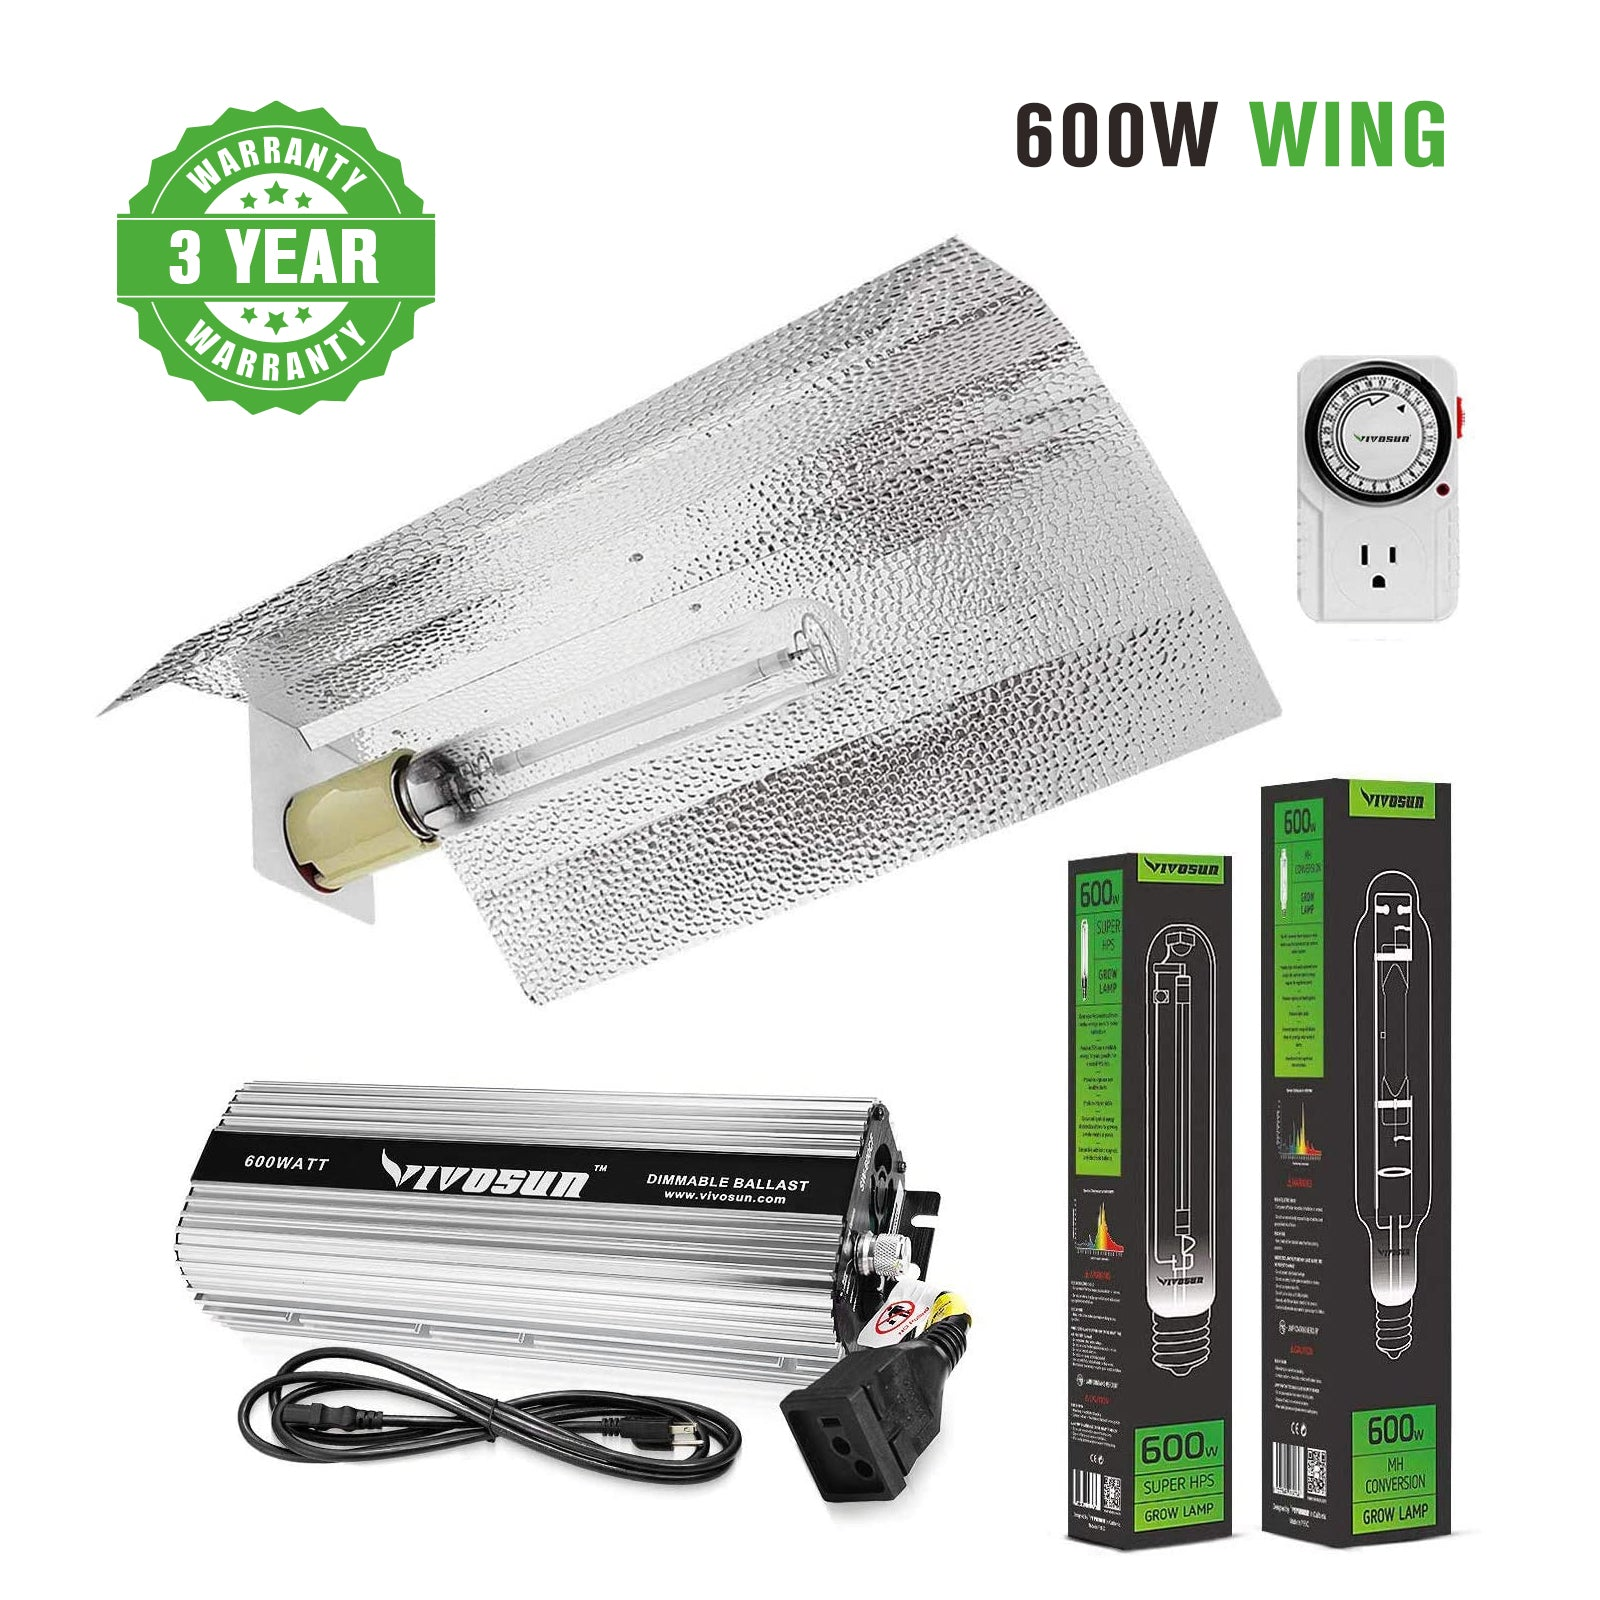 VIVOSUN 600W HPS MH Grow Light Wing Reflector Kit